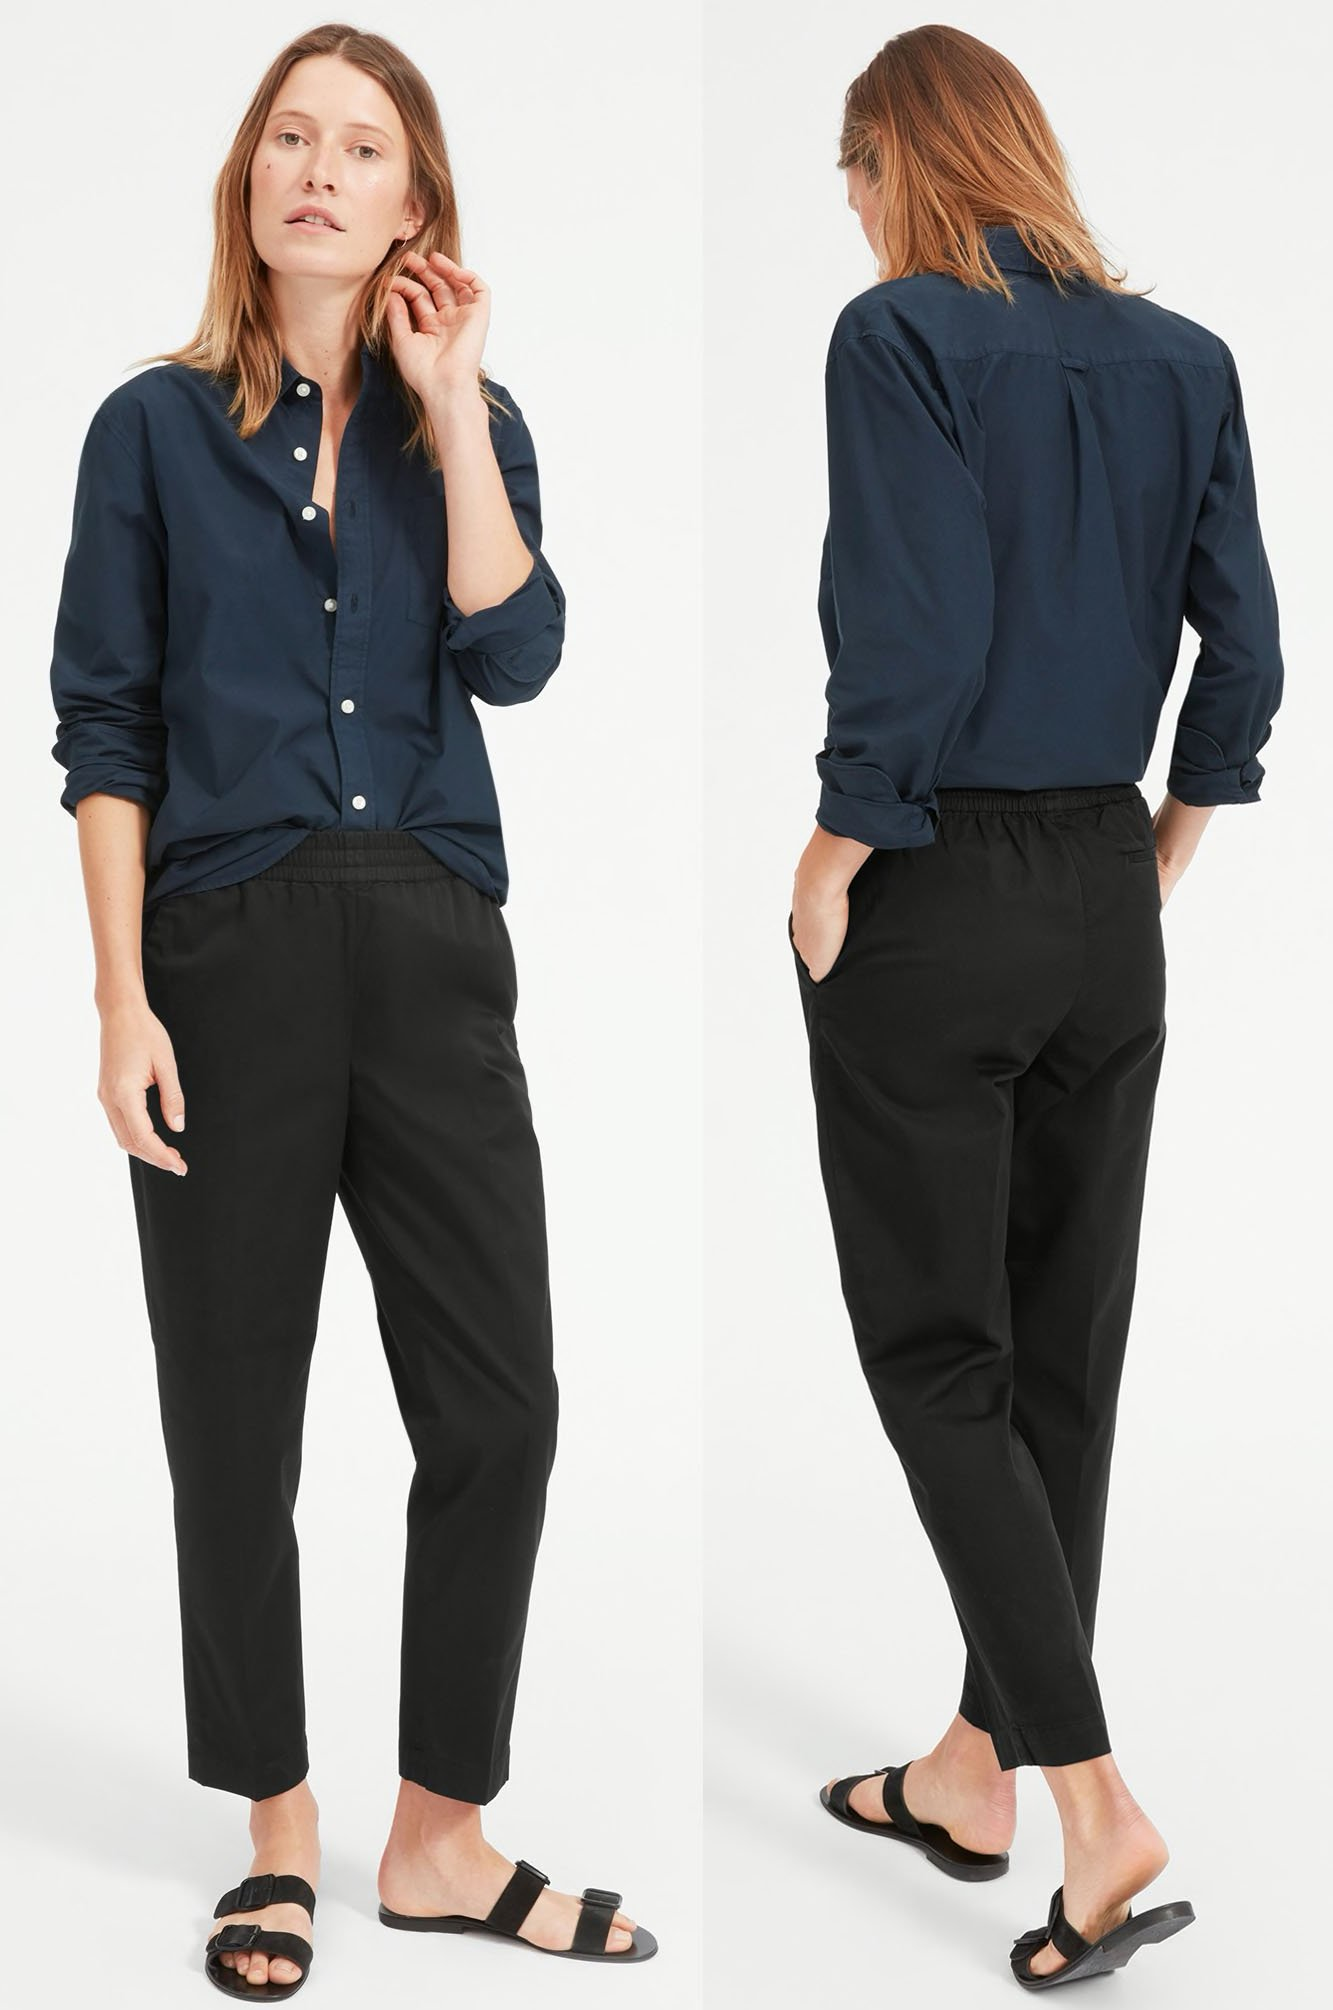 Get your modern essentials like office pants and outerwear from Everlane